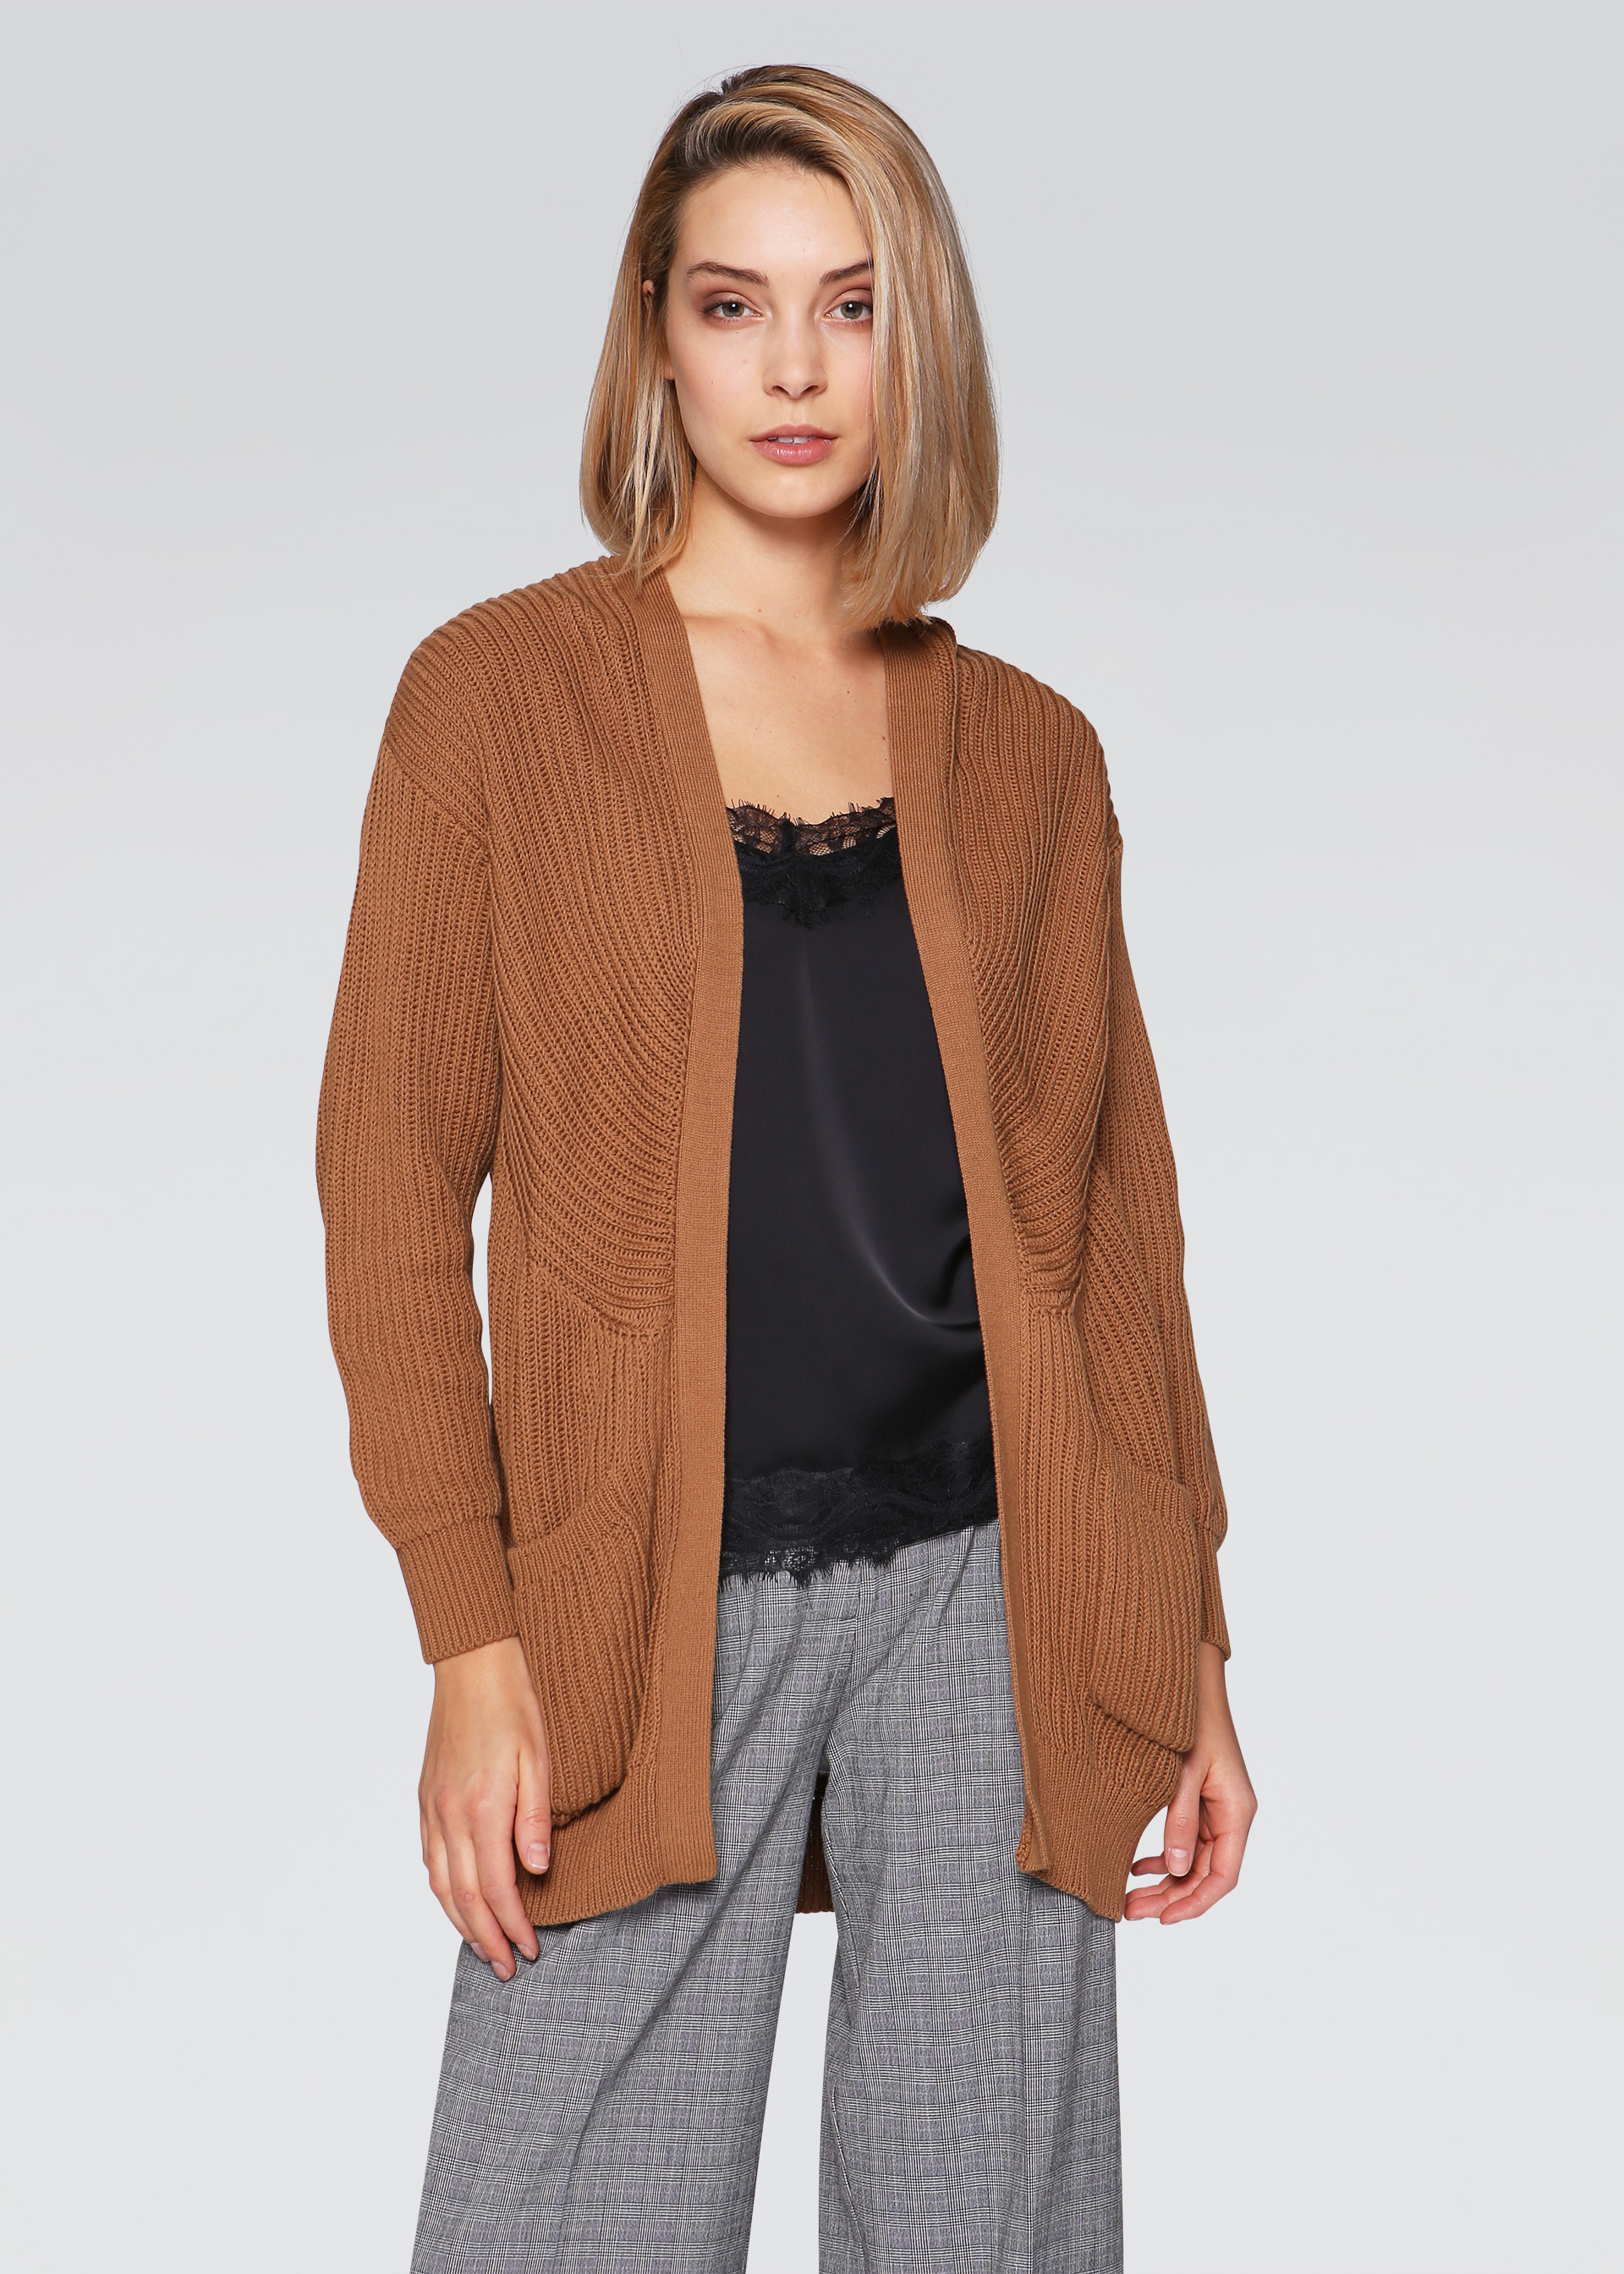 Cardigan over a coste